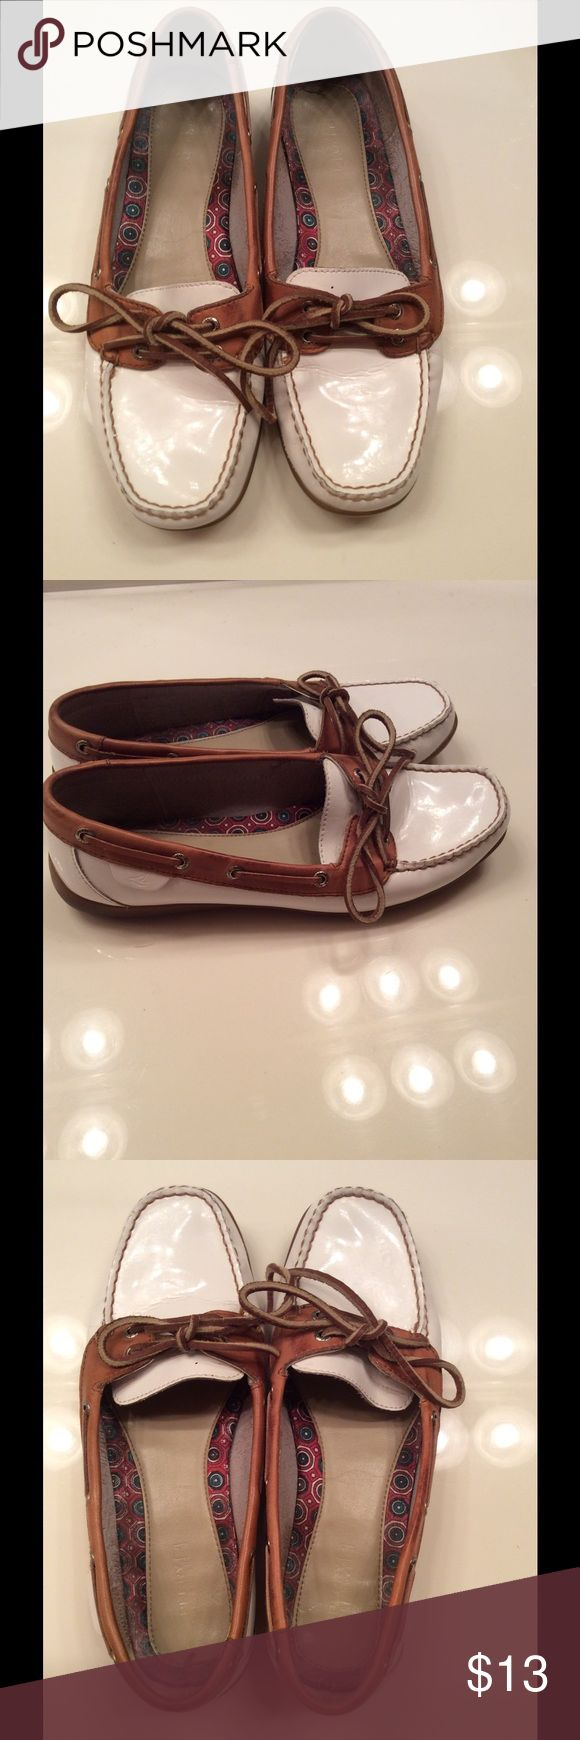 Cute white boat shoes In great condition white boat shoes Sperry Top-Sider Shoes